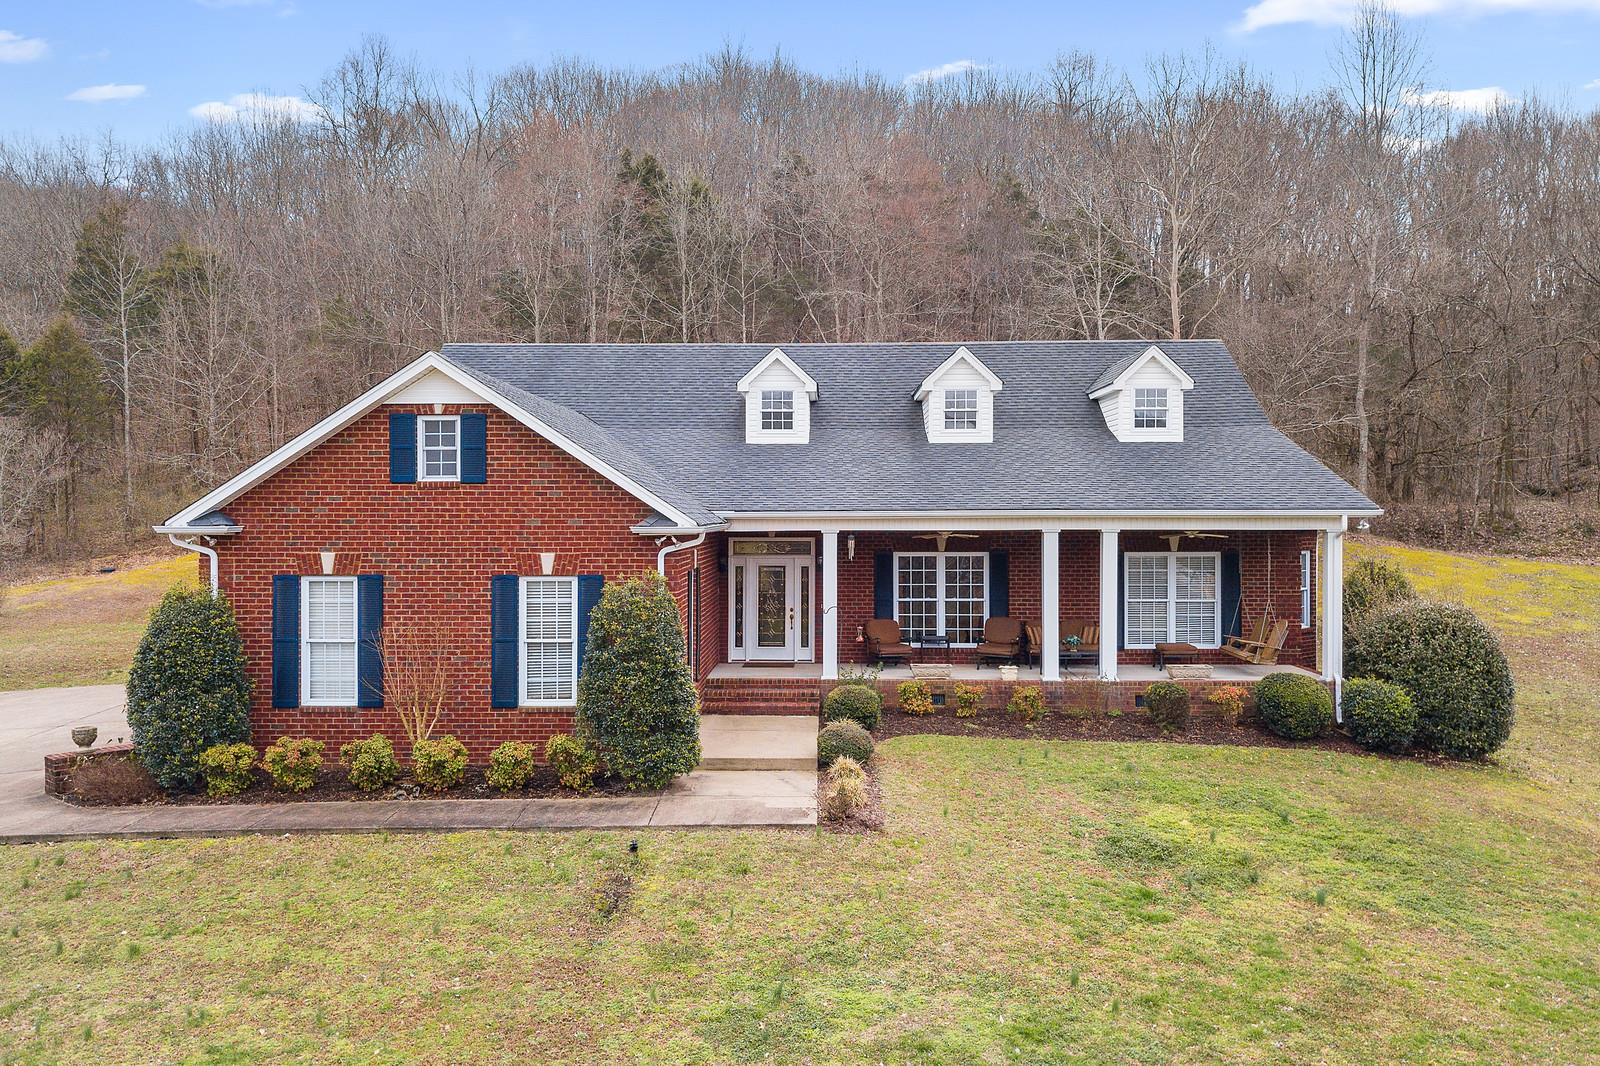 2243 Ingram Rd, Whites Creek, TN 37189 - Whites Creek, TN real estate listing